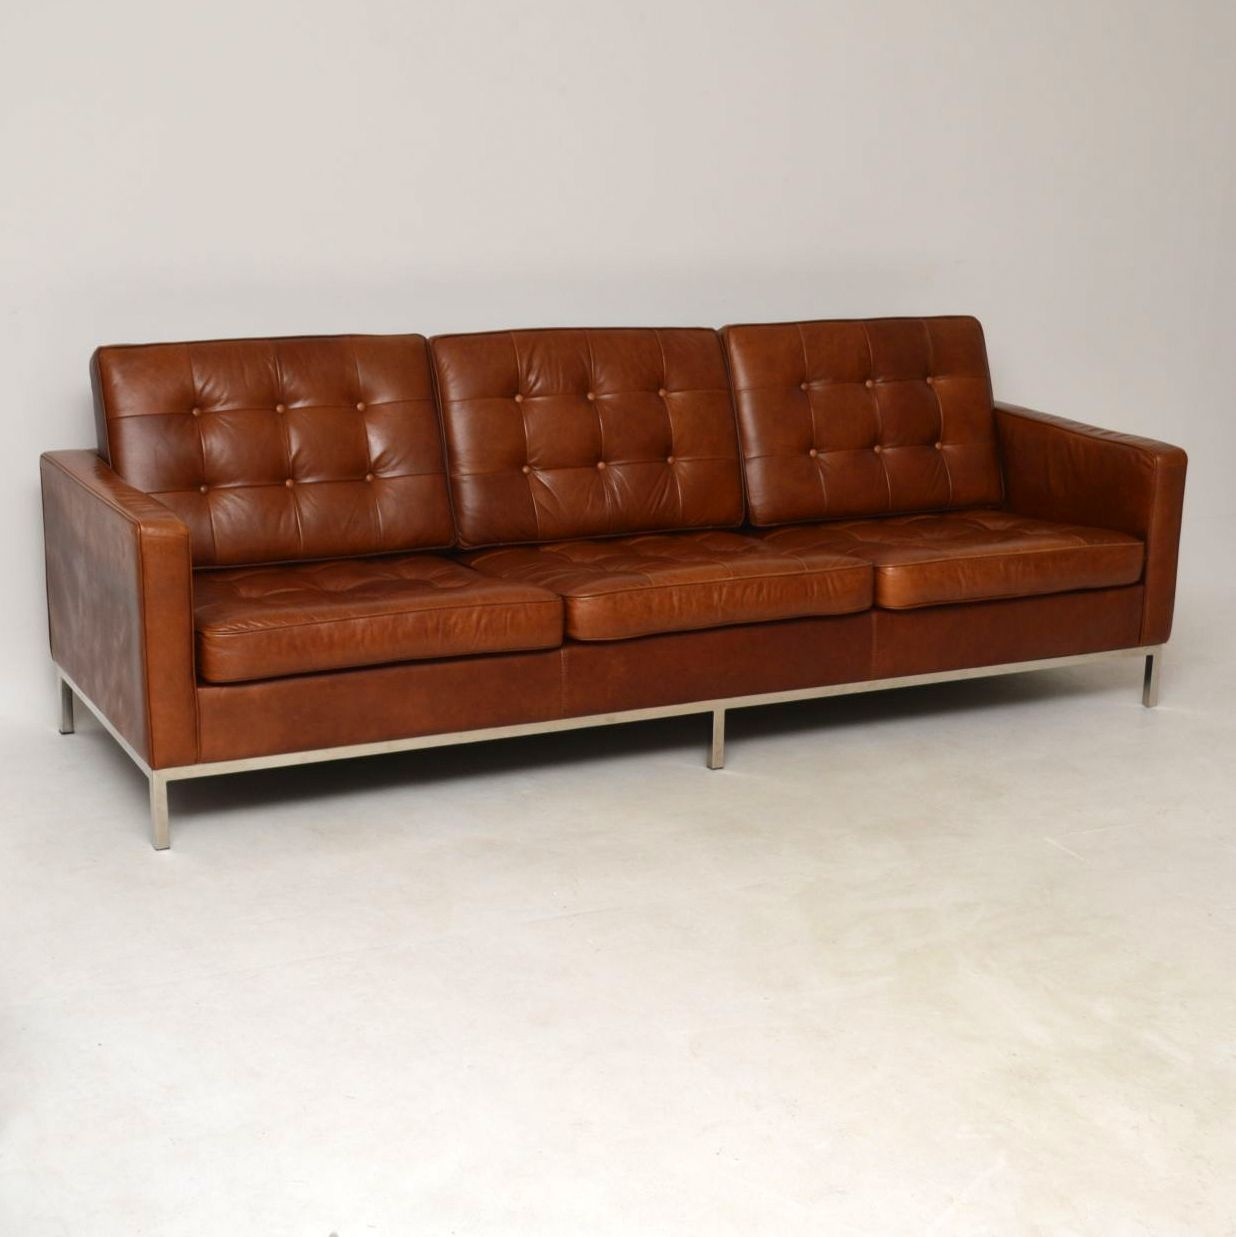 An Absolutely Superb Sofa In Leather And Chrome, This Was Intended For Florence Knoll Leather Sofas (View 9 of 15)